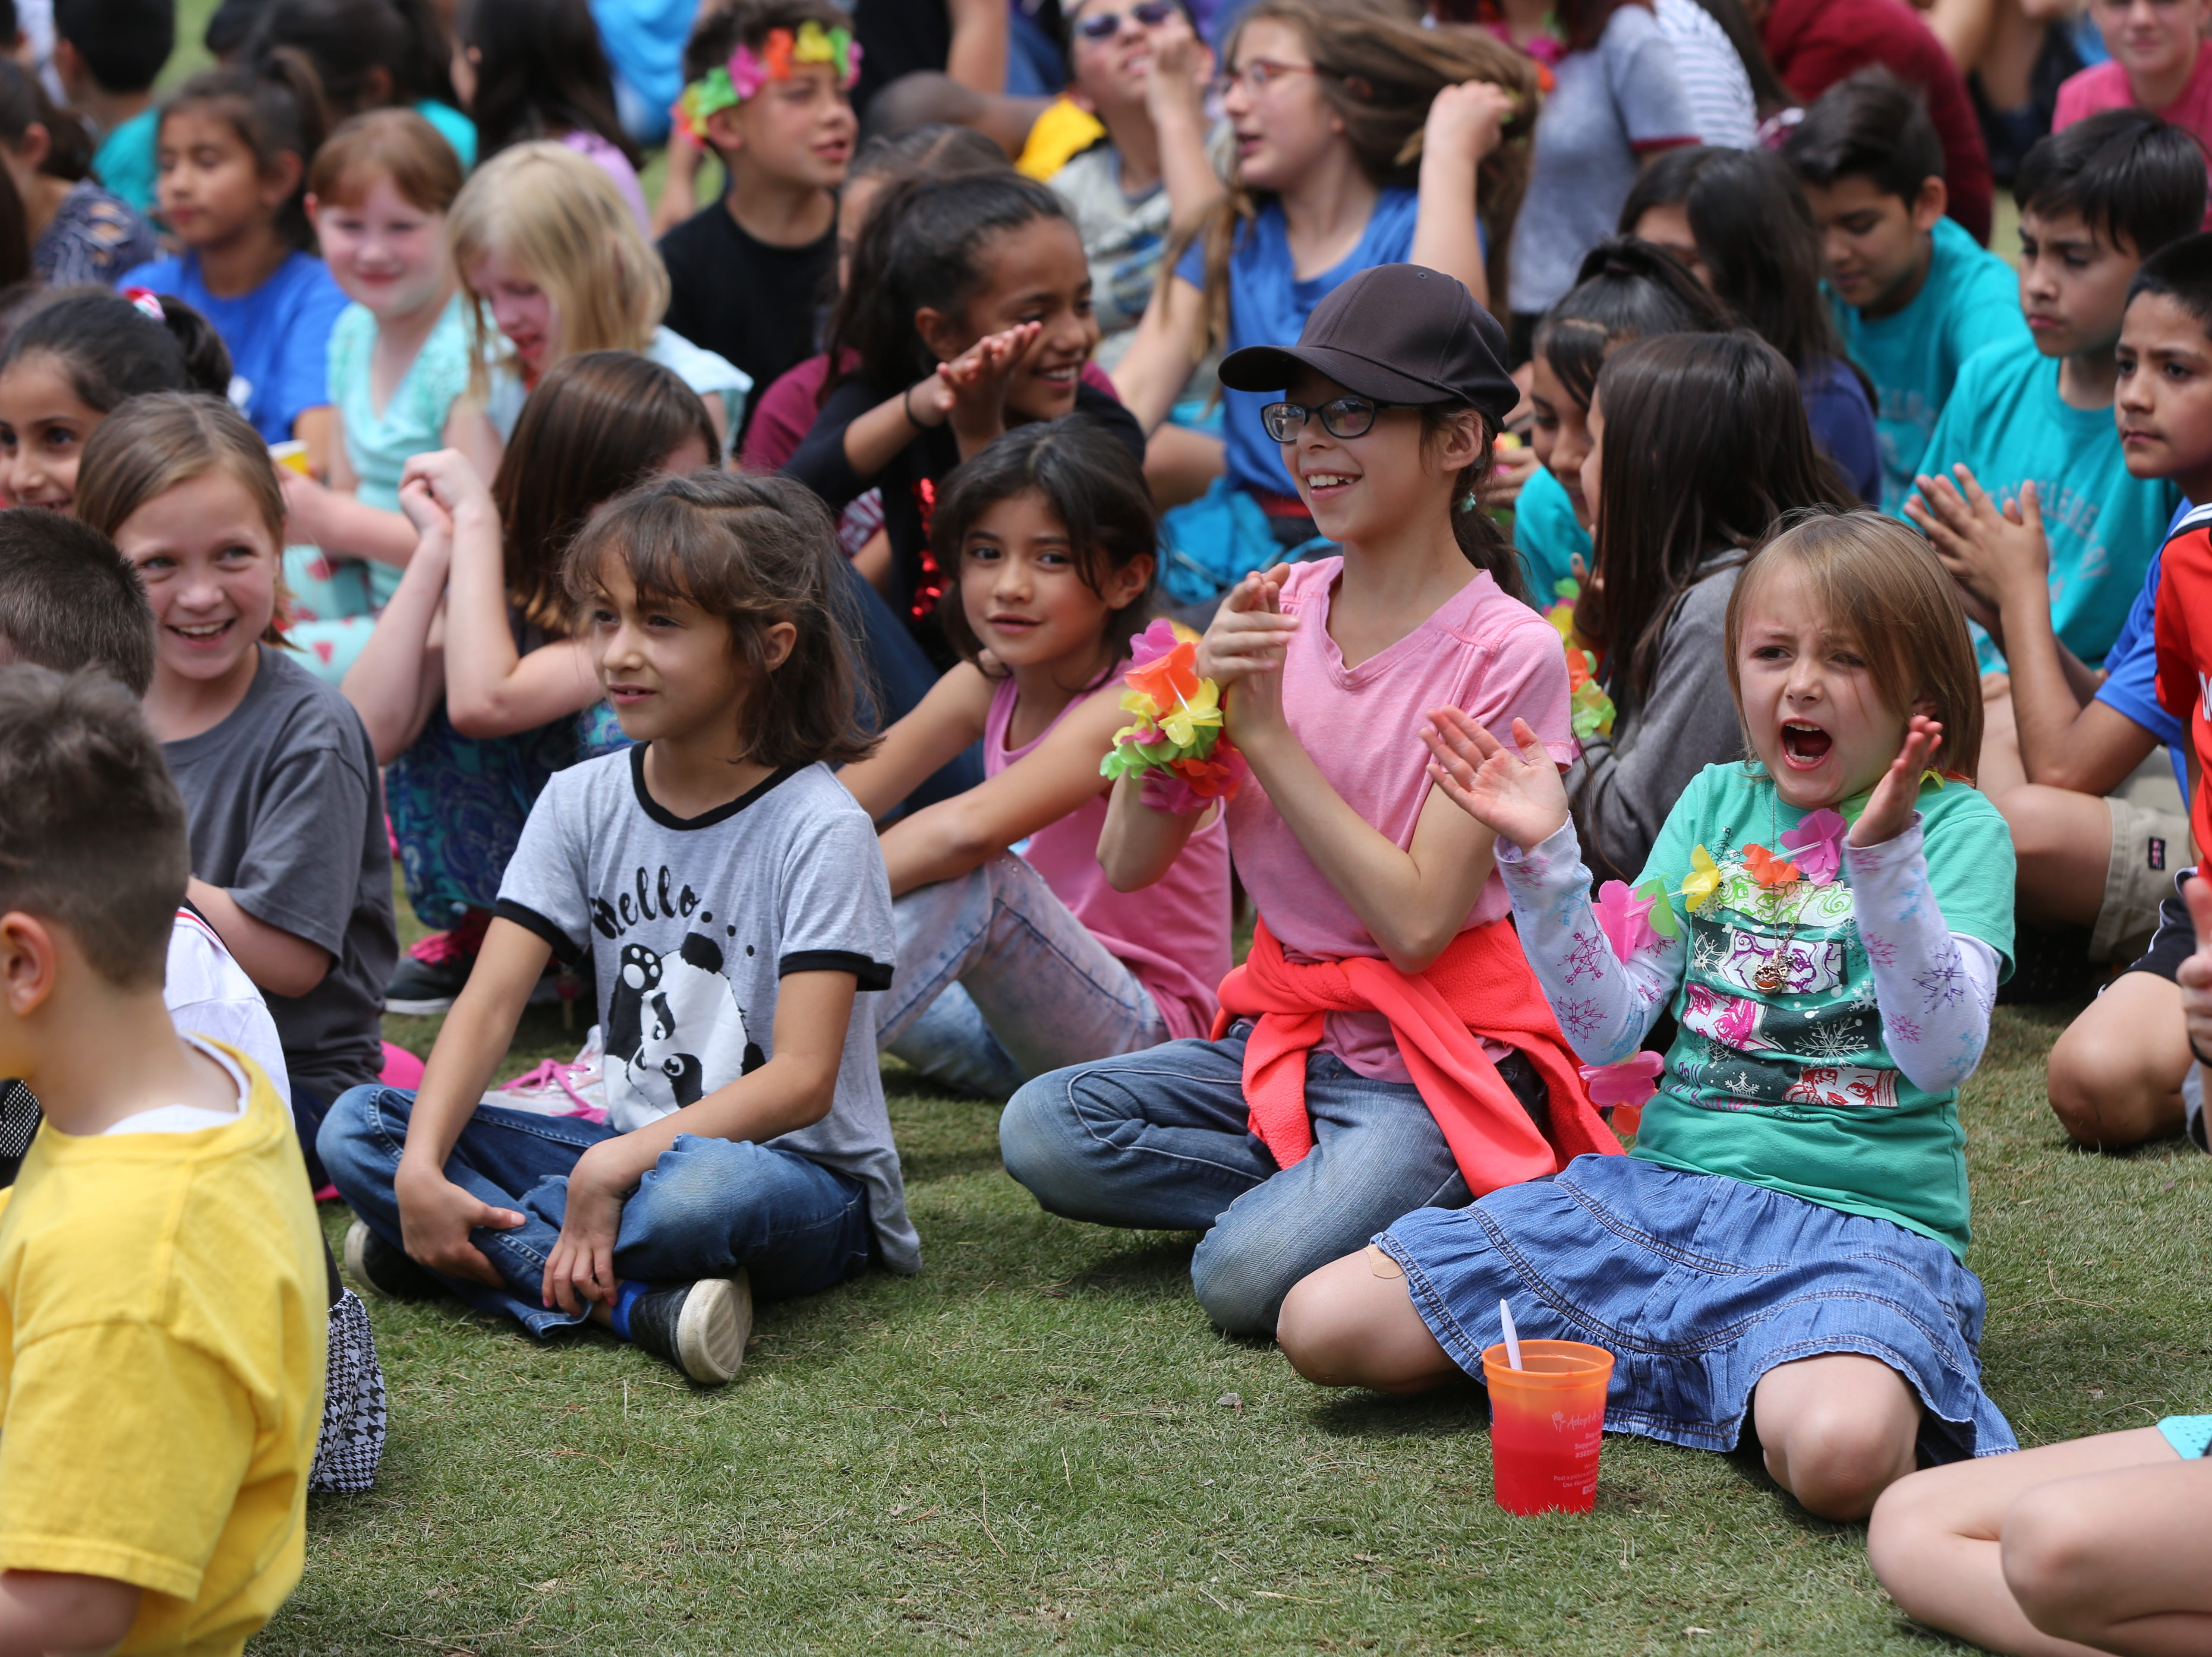 Central Elementary School students cheered and celebrated the school's 70th anniversary Wednesday, April 24.